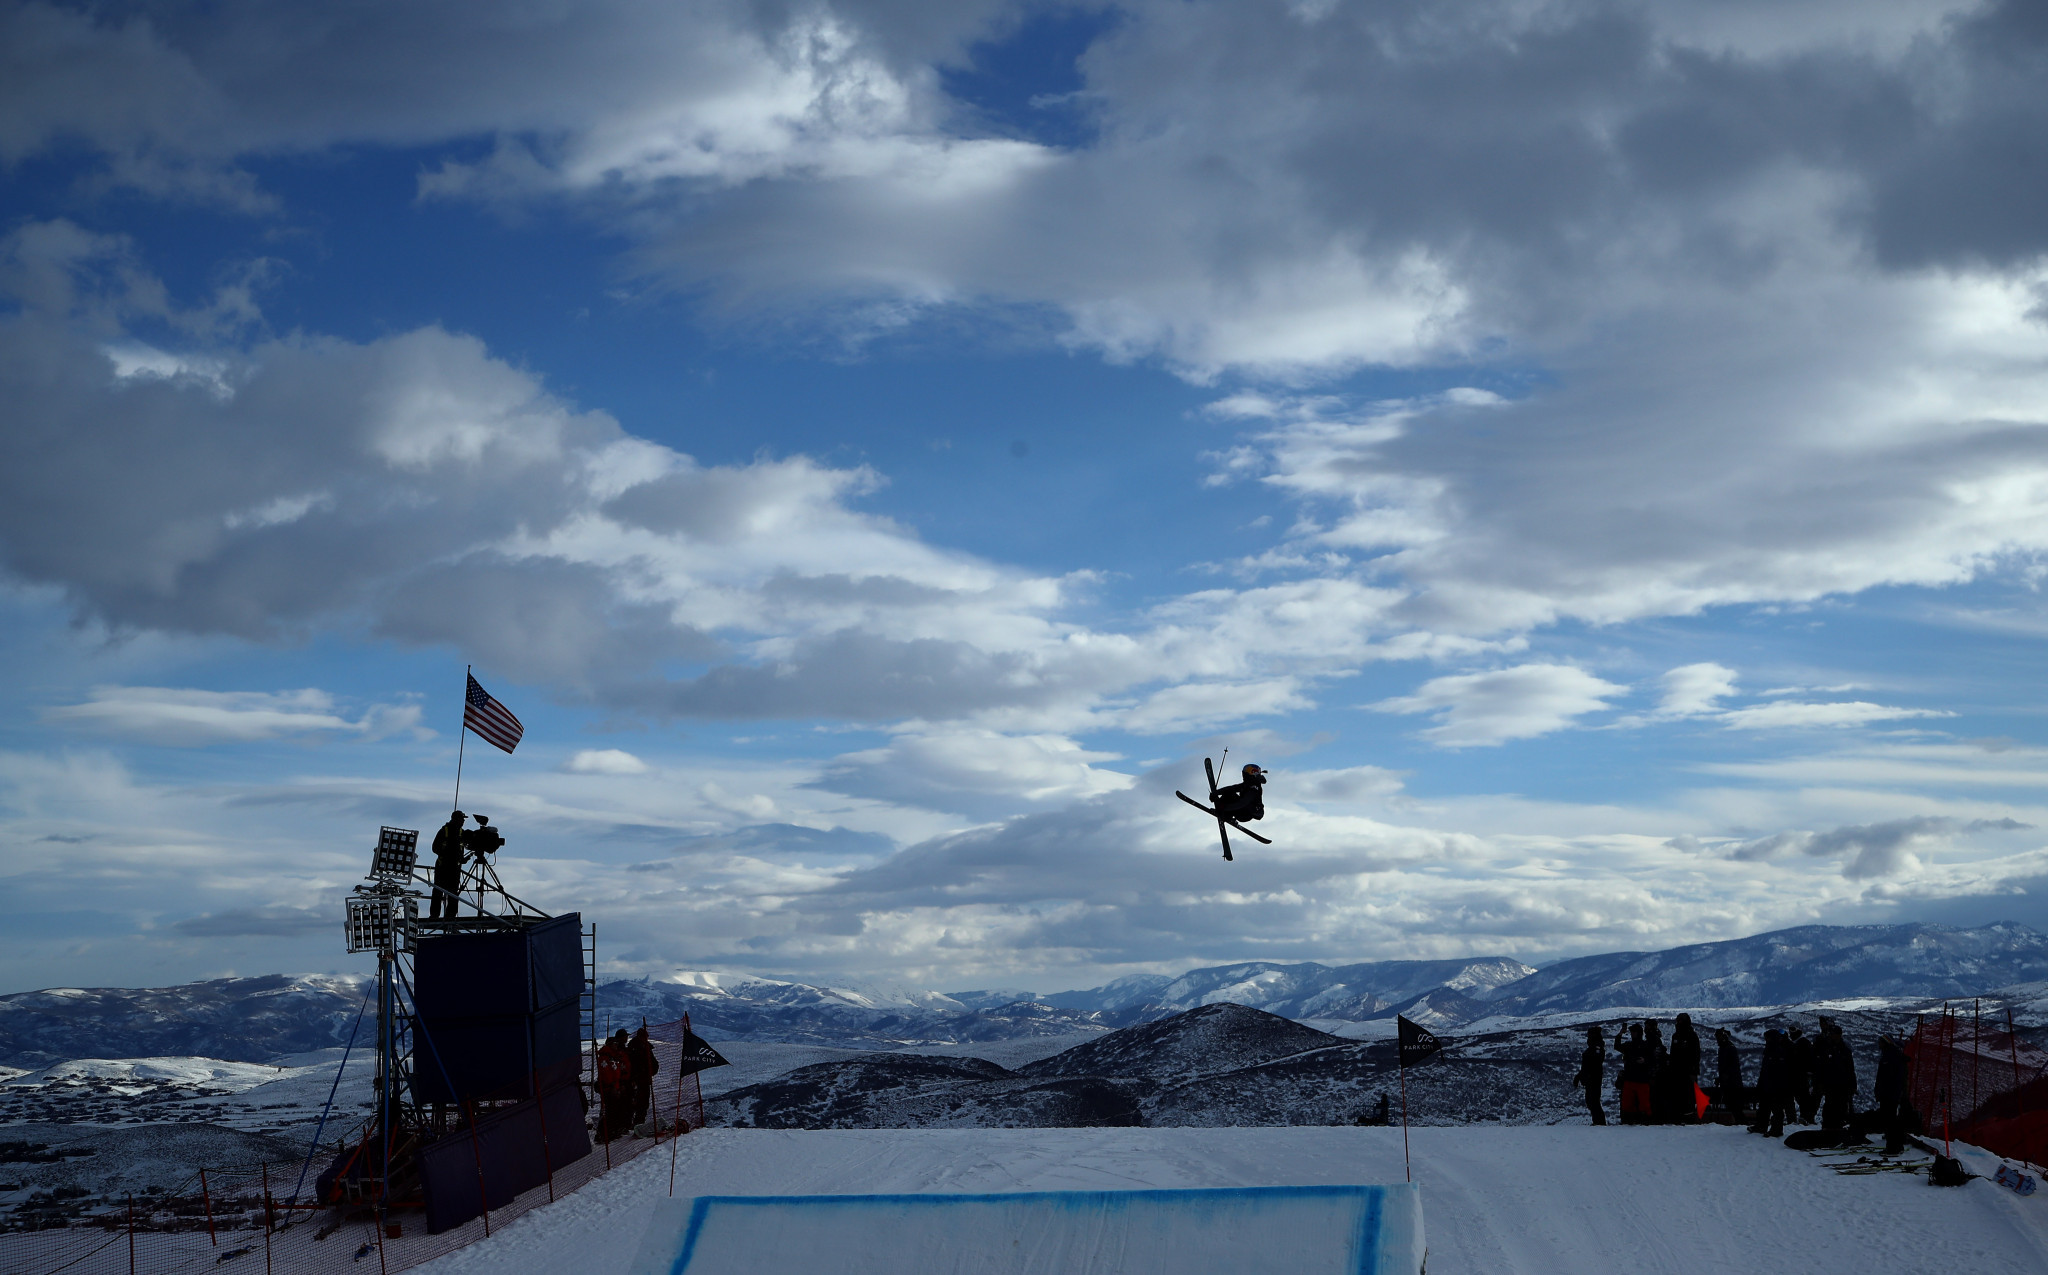 Ledeux among starters at FIS Freeski Big Air World Cup in Kreischberg